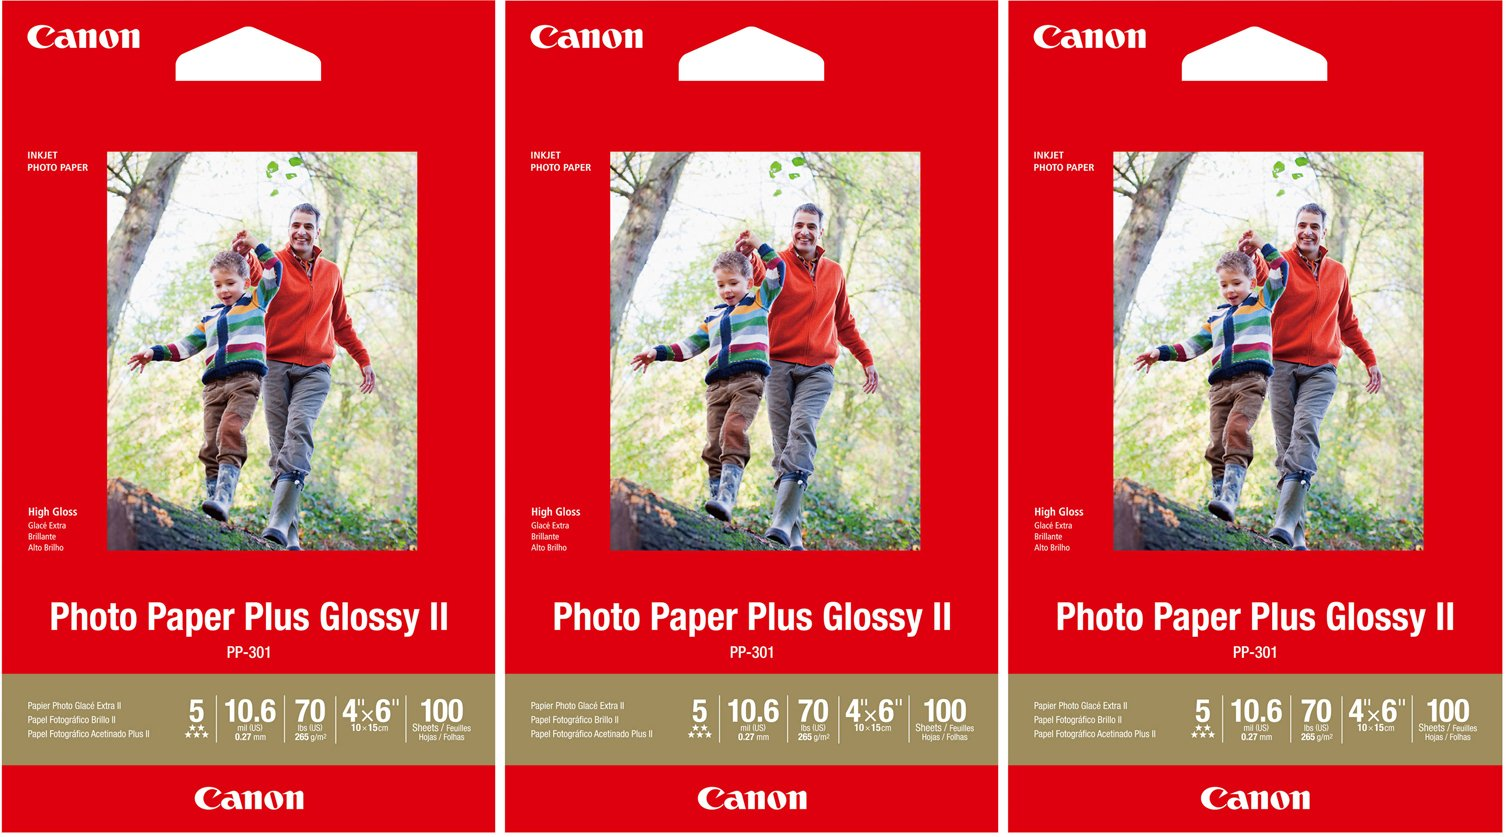 Canon PP-301 Photo Paper Plus Glossy II (4x6, 300 Sheets) 3 Pack